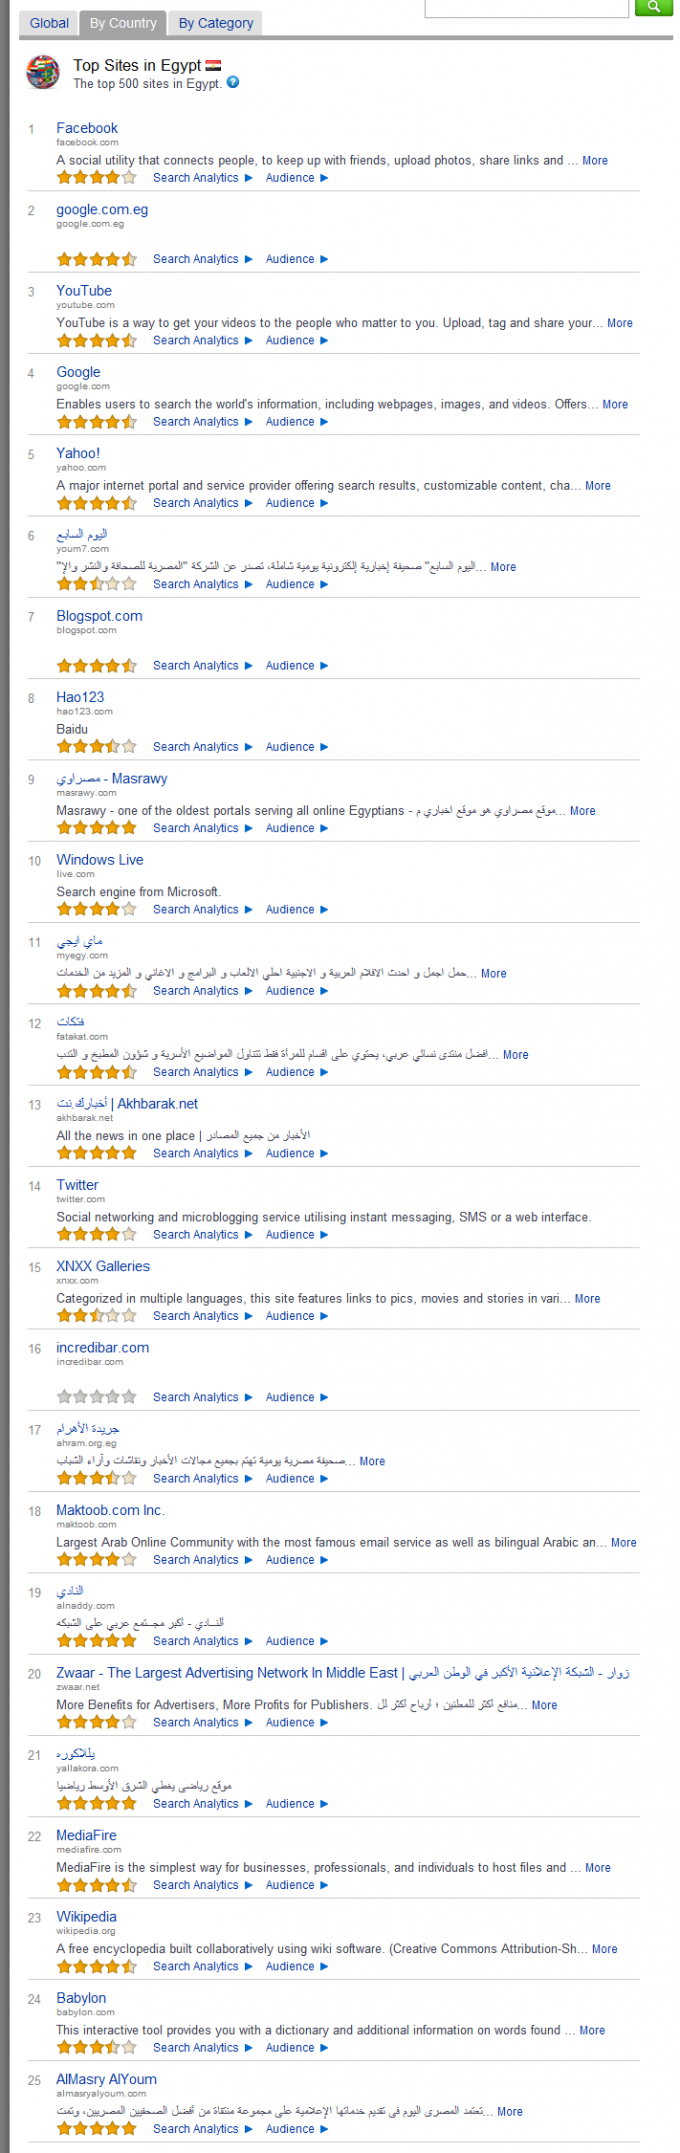 Top 25 Sites in Egypt